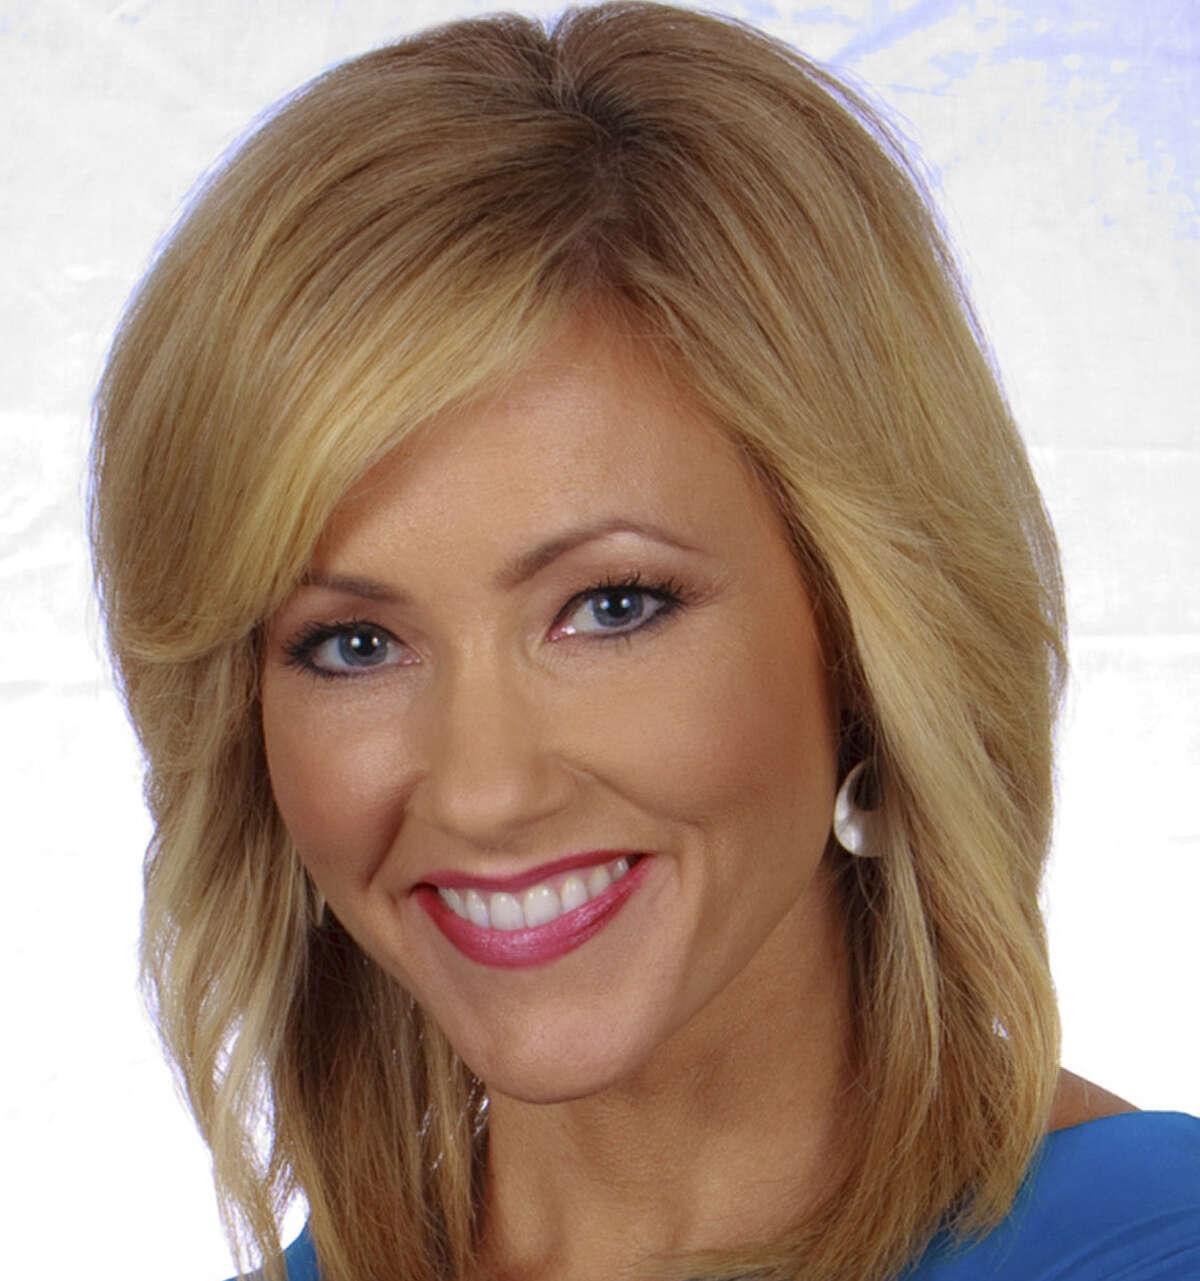 WOAI anchor Delaine Mathieu.